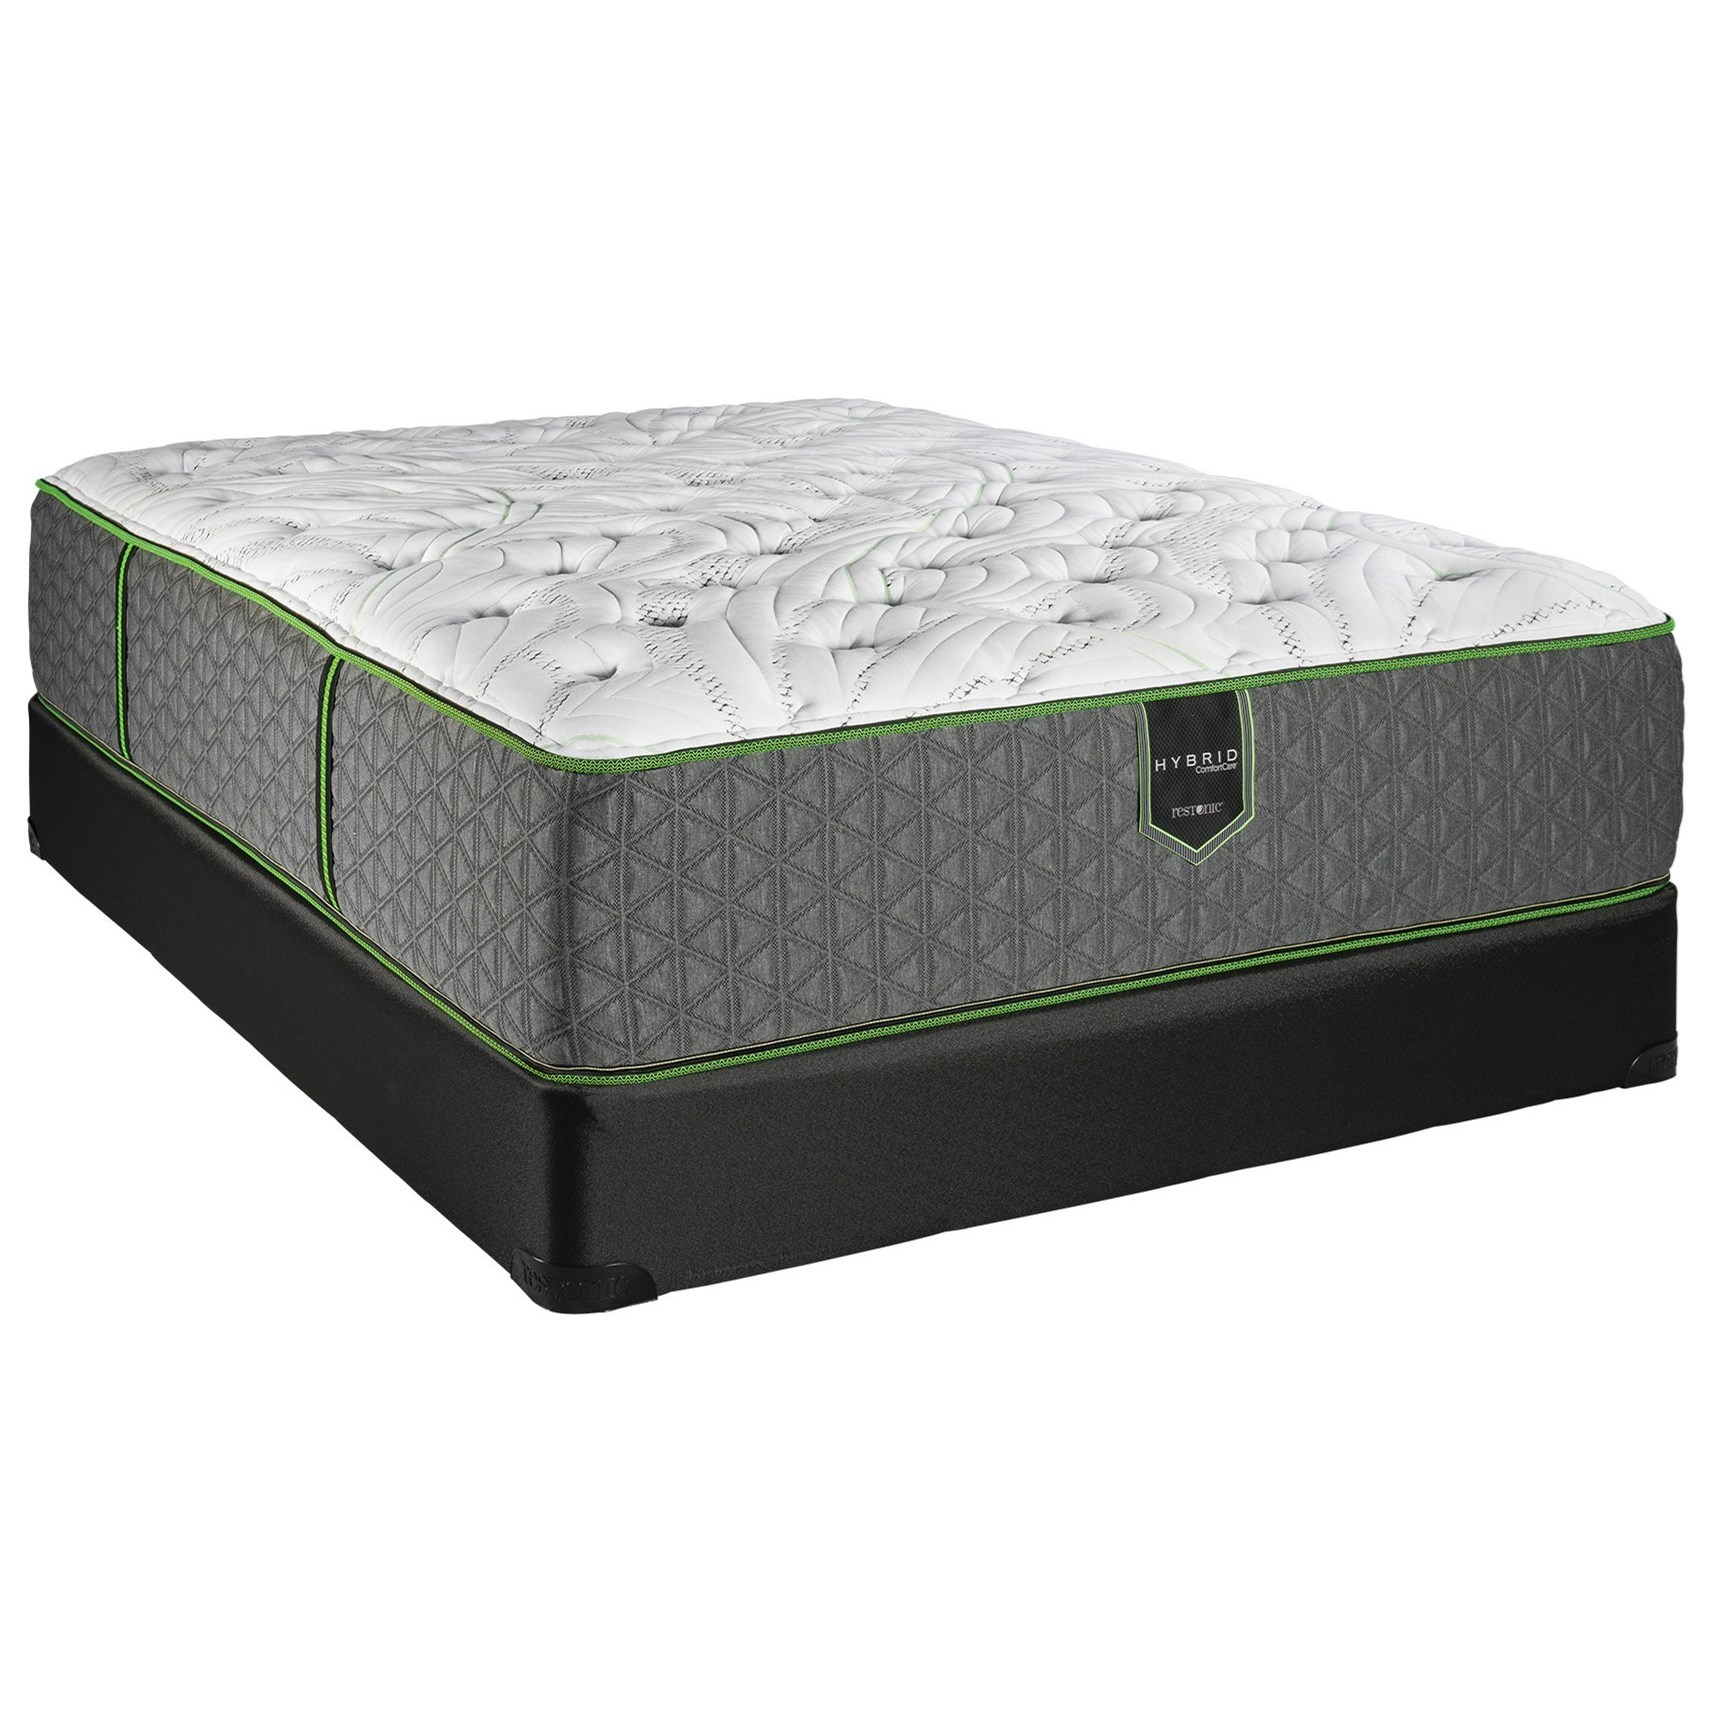 Kimberley LF Twin XL Hybrid Mattress Set by Restonic at H.L. Stephens